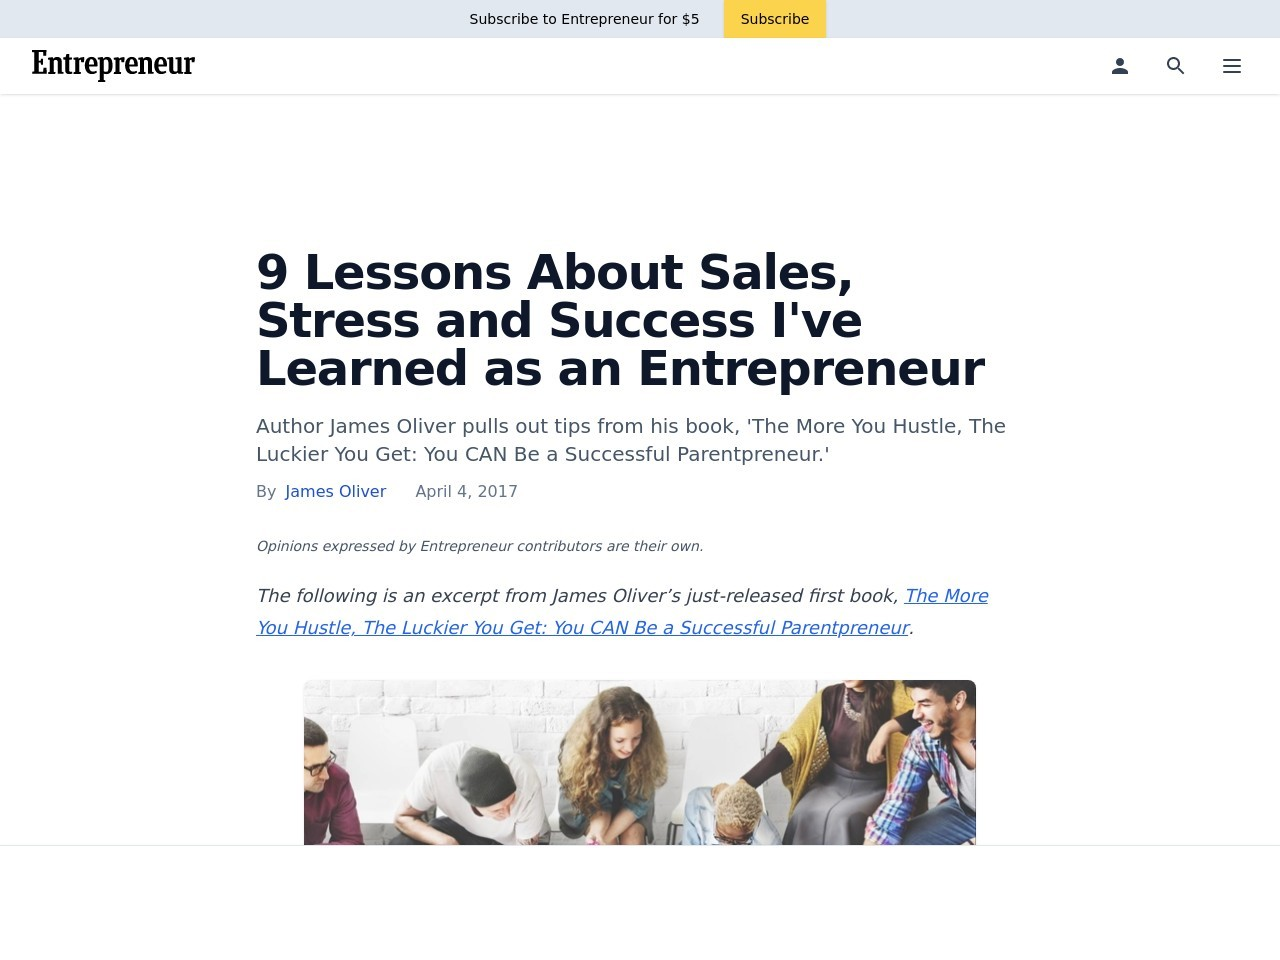 9 Lessons About Sales, Stress and Success I've Learned as an Entrepreneur